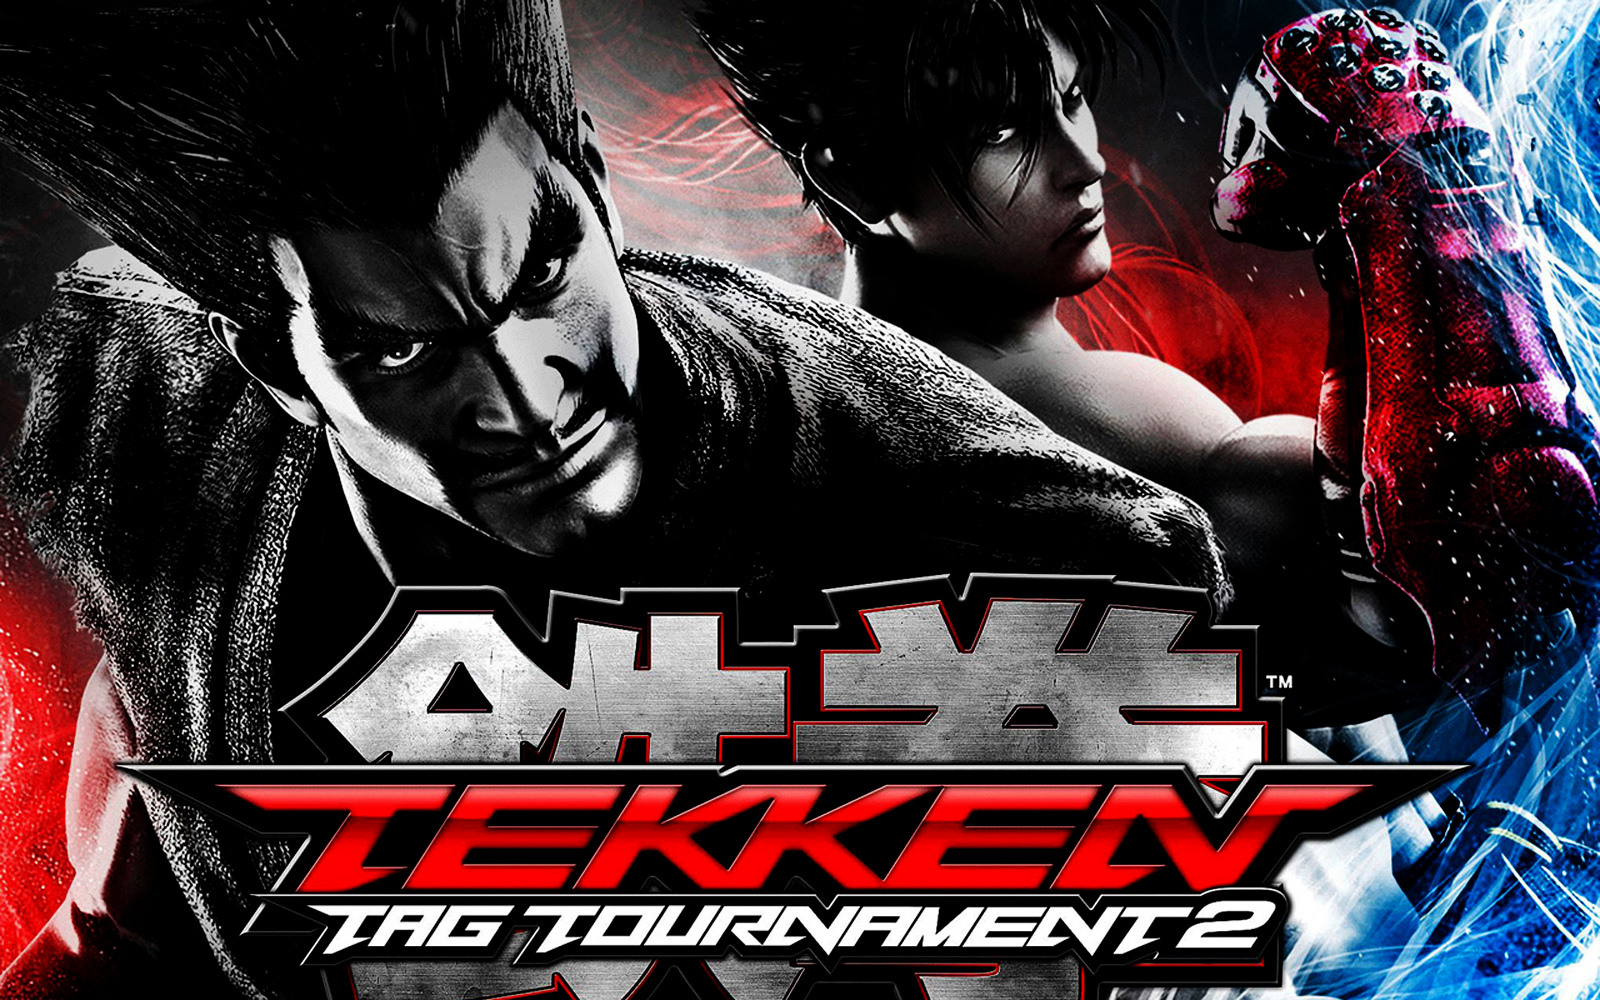 http://1.bp.blogspot.com/-uWCkohzo1eg/UEcUMR2QSpI/AAAAAAAAEPs/pzwW_fYJpZE/s1600/Tekken_Tag_Tournament_2_Video_Game_HD_Wallpaper-GameWallBase.Com.jpg